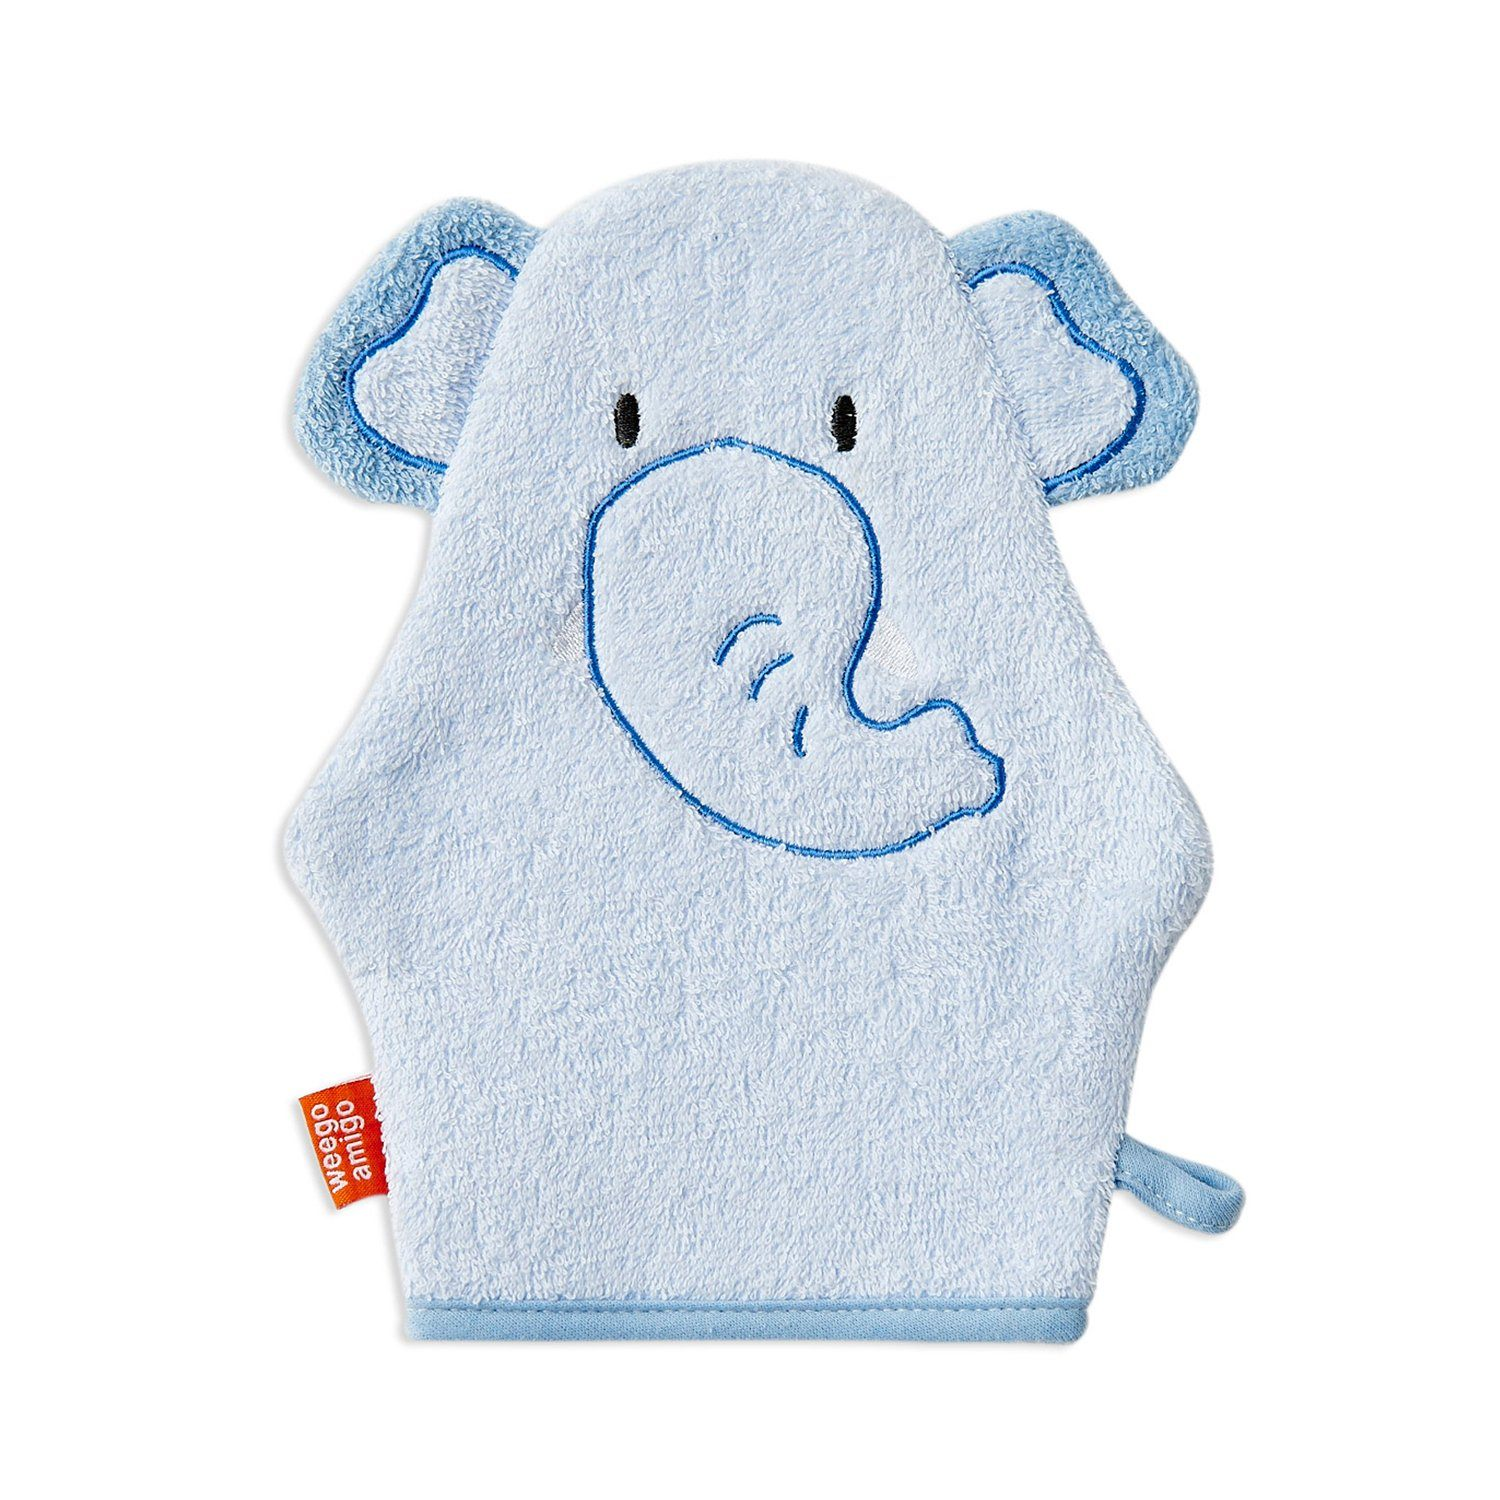 Bath Mitt (Elephant)